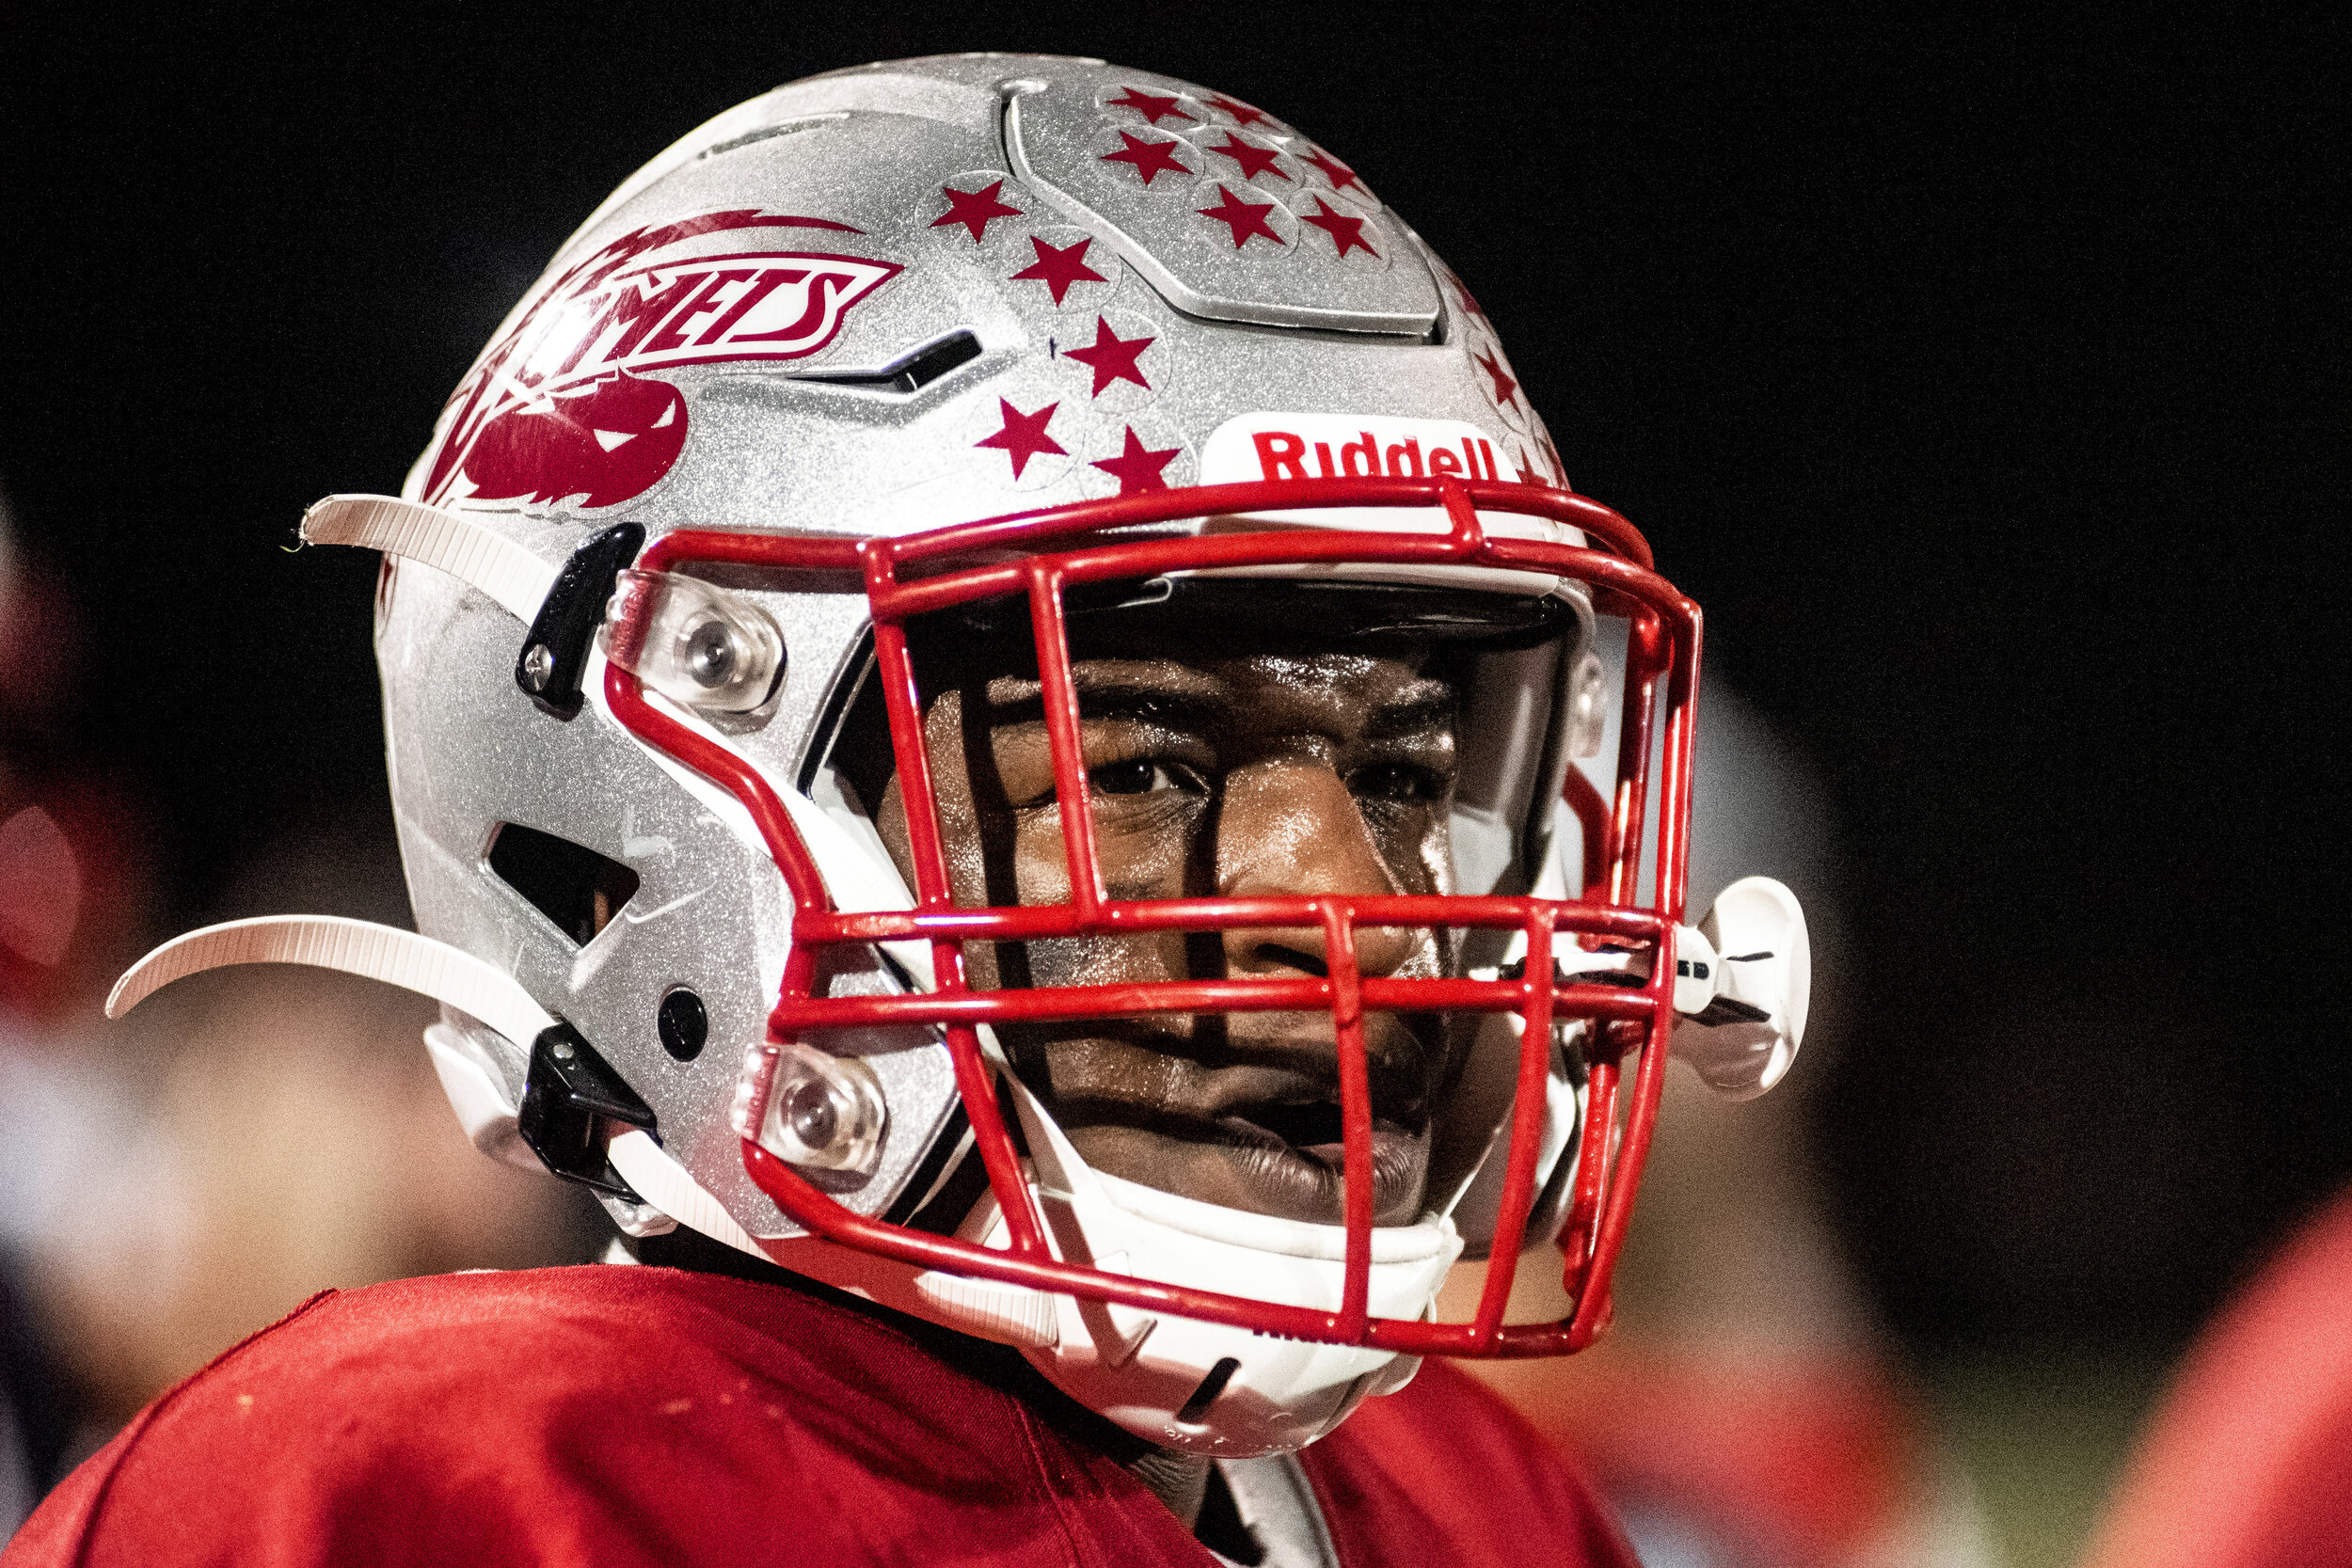 Carthage Football's Fombo Azah looks out into the field from the sidelines of the homecoming game against Indian River in Carthage, NY.